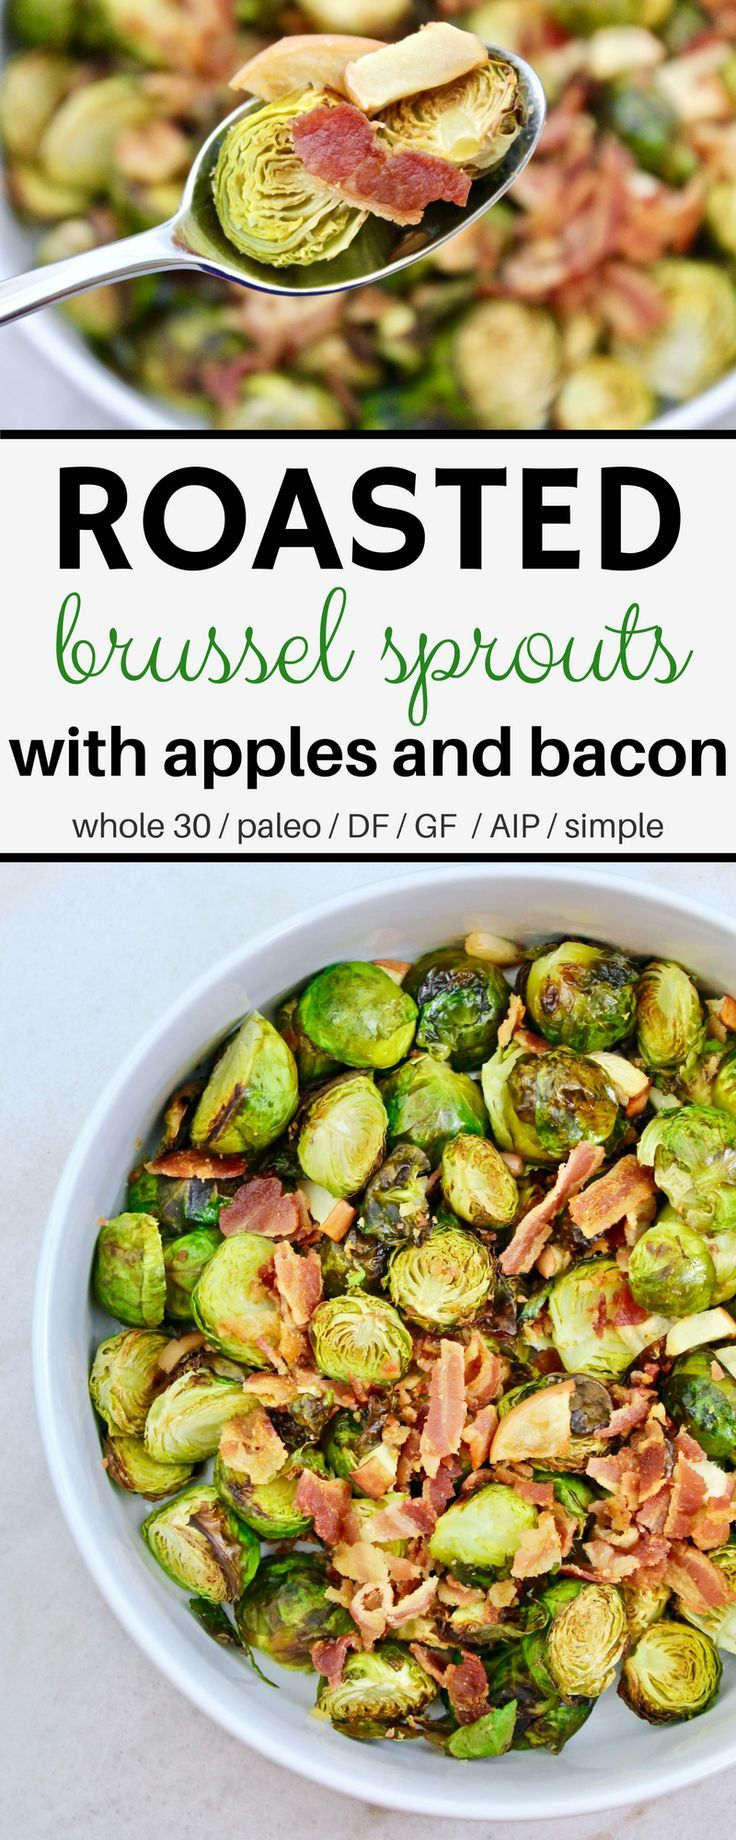 Roasted Brussel Sprouts with Apples and Bacon - a super easy, delicious, husband-approved side. Paleo, Whole30, AIP, Dairy-free, & Gluten-Free!